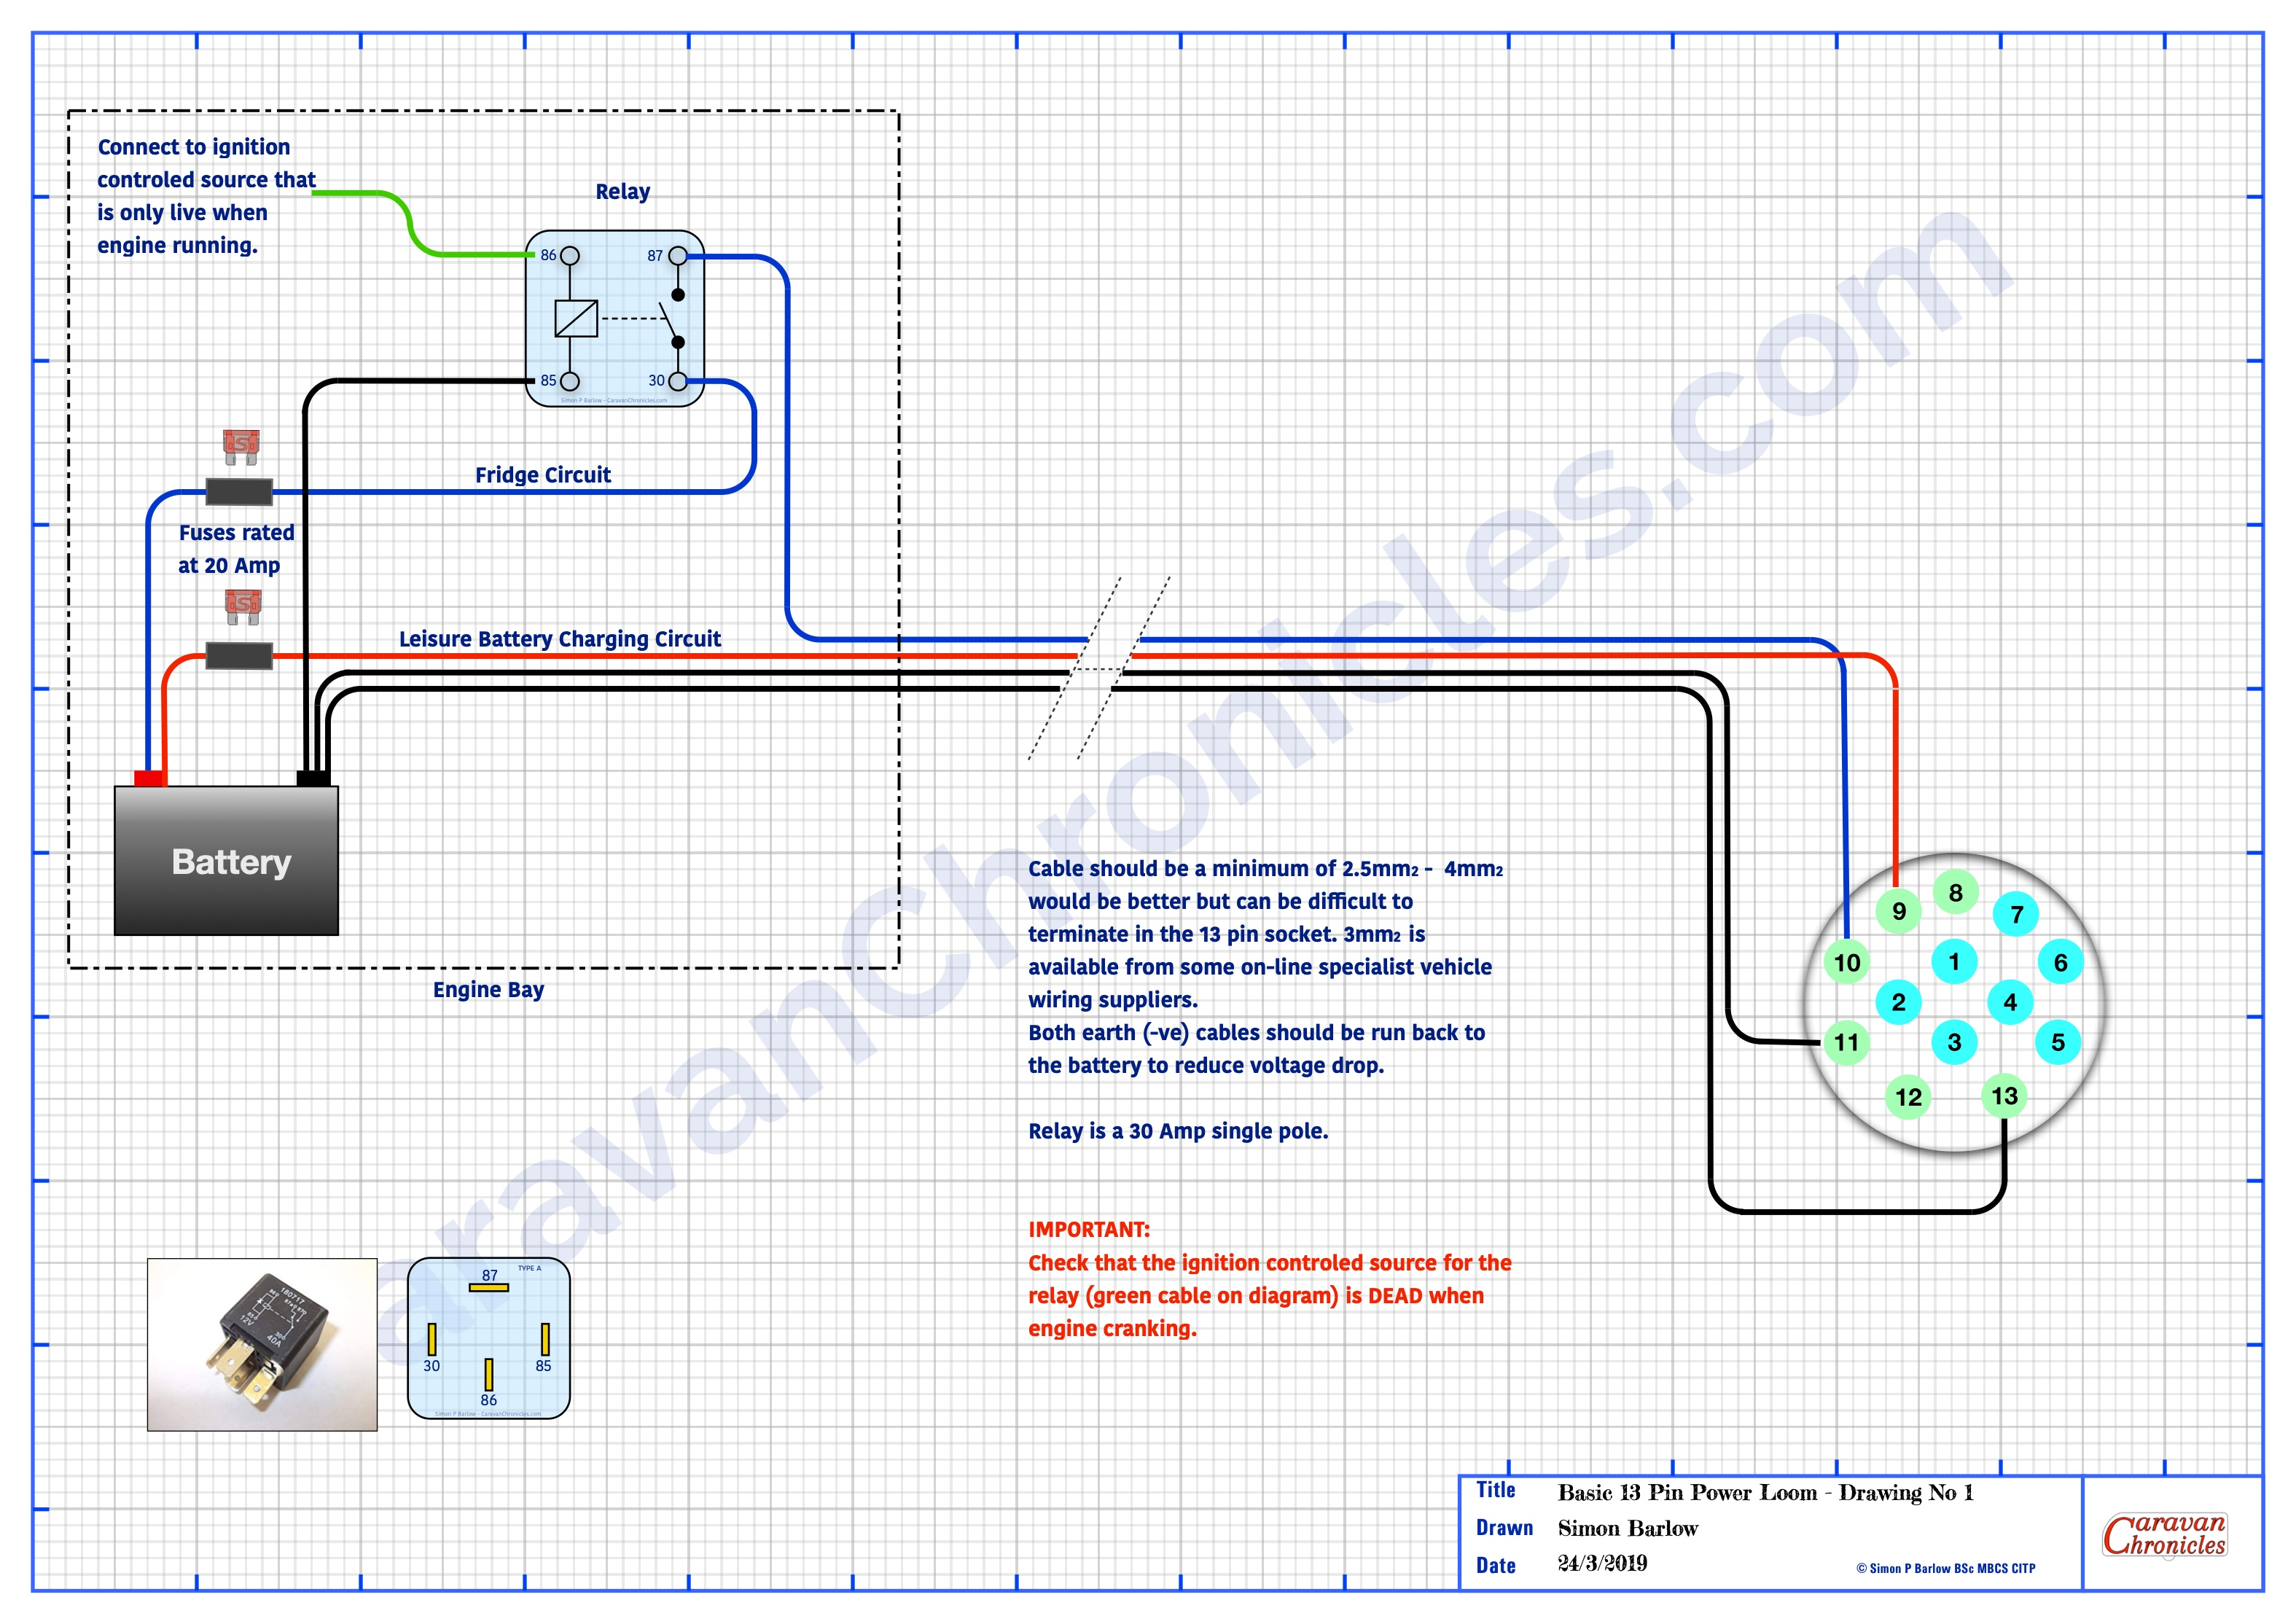 Split Charge Relay Wiring Diagram from caravanchronicles.files.wordpress.com